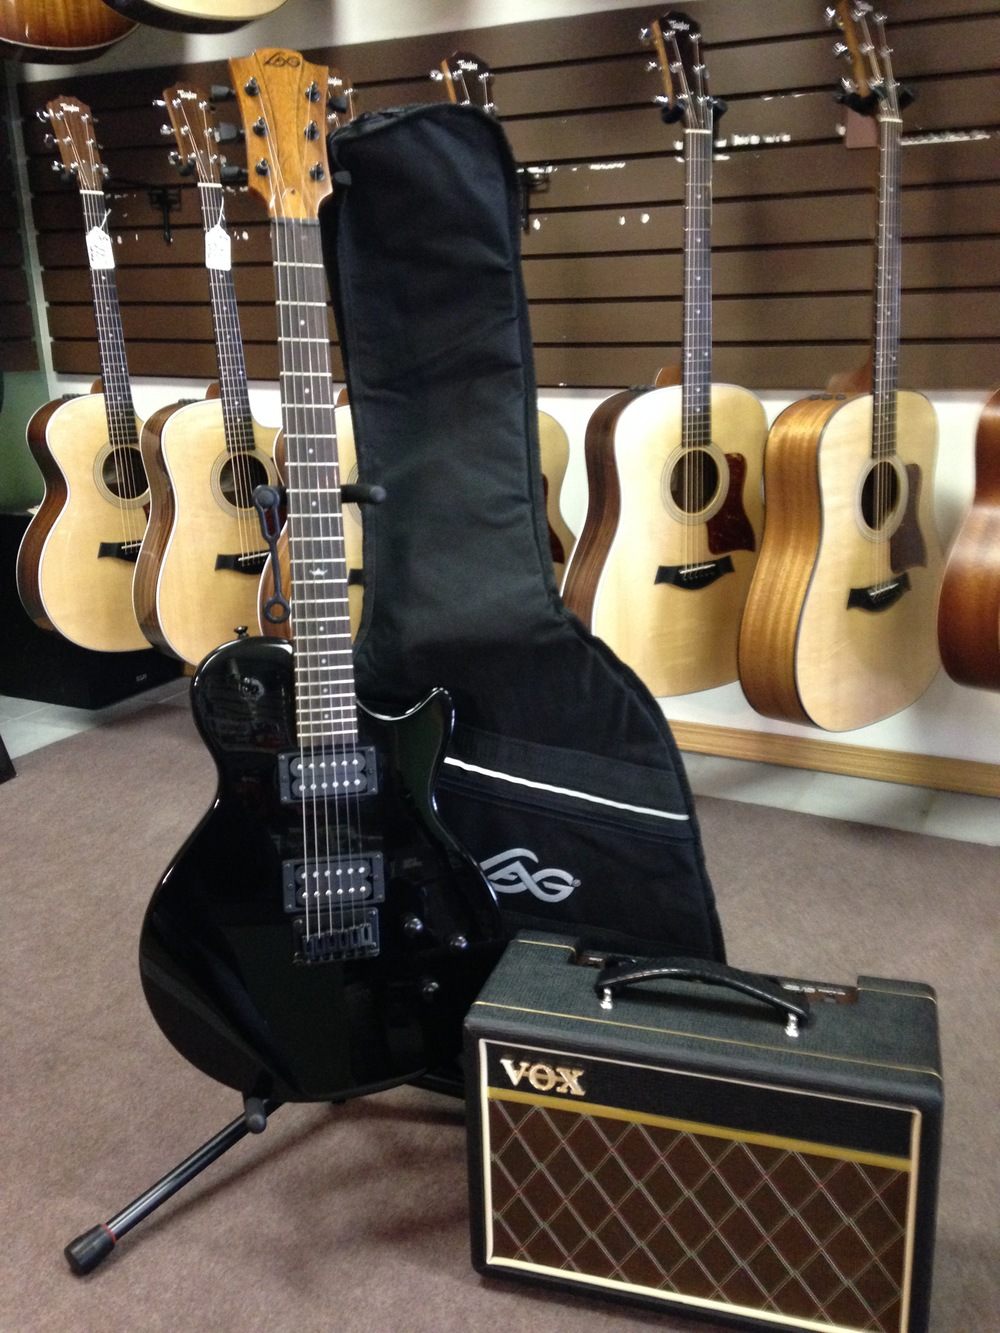 I66 Package - $300 w/ Vox amp, gigbag, tuner, strap, and picks.